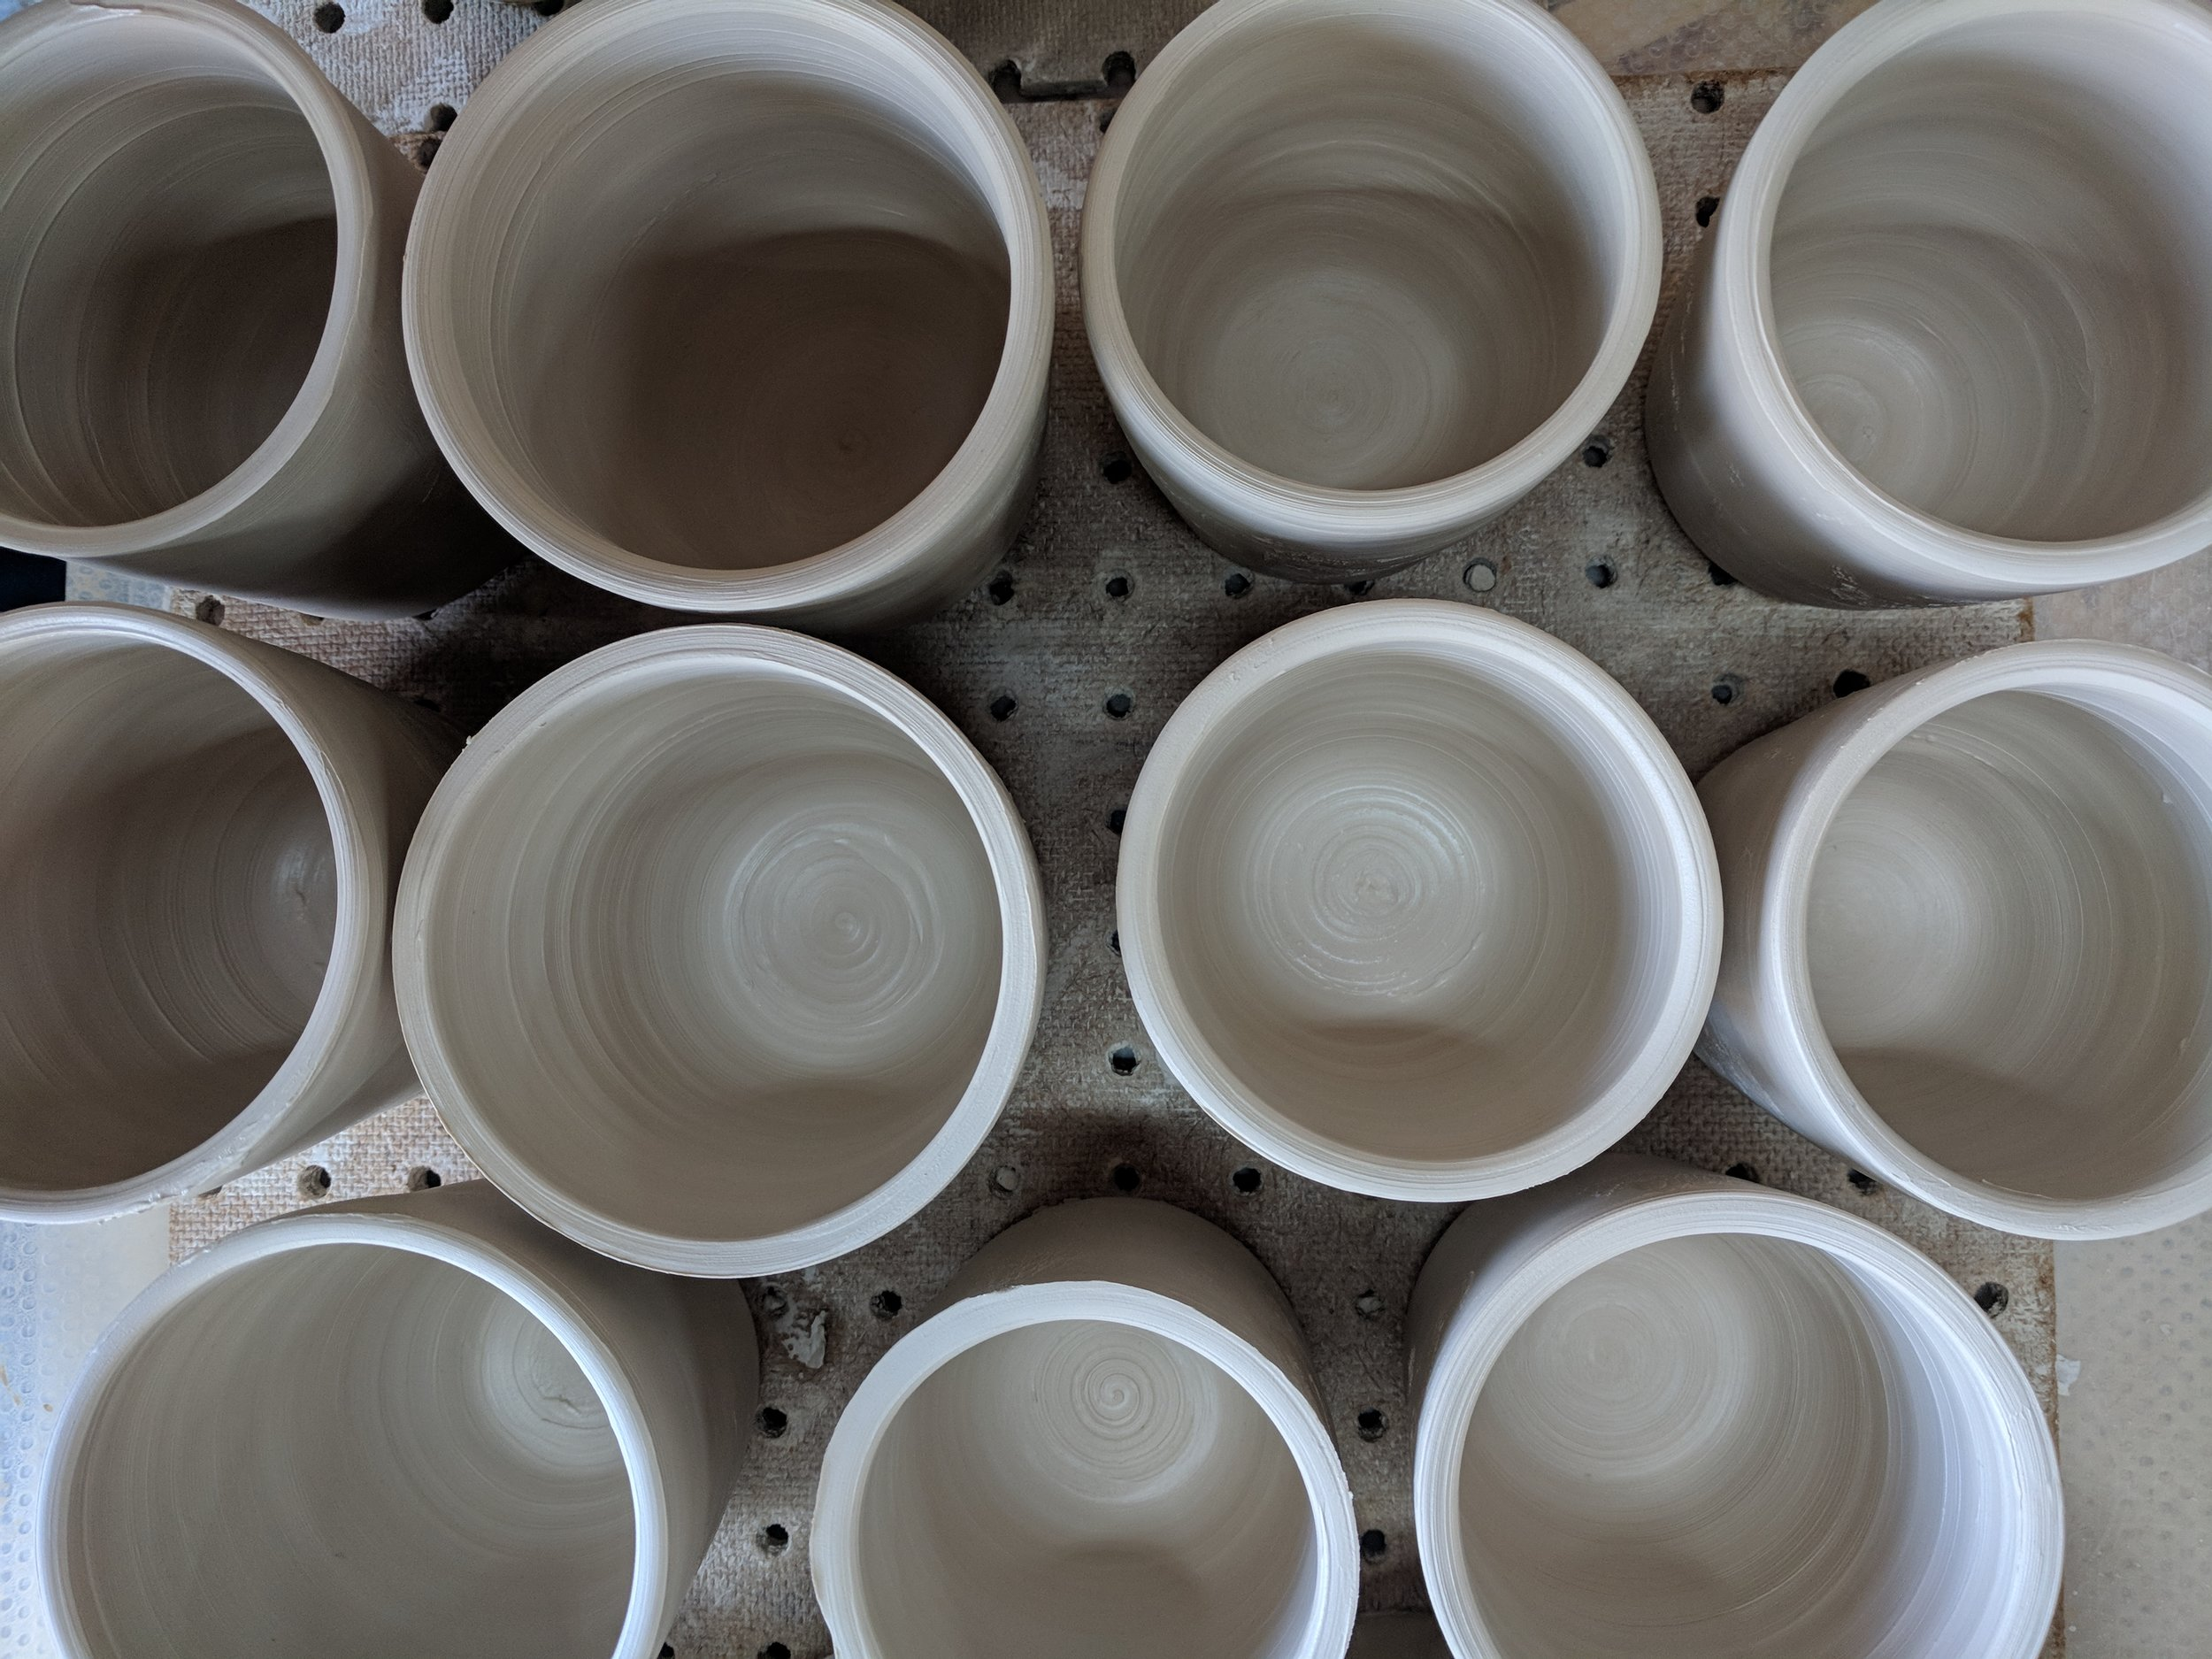 mug batch in progress